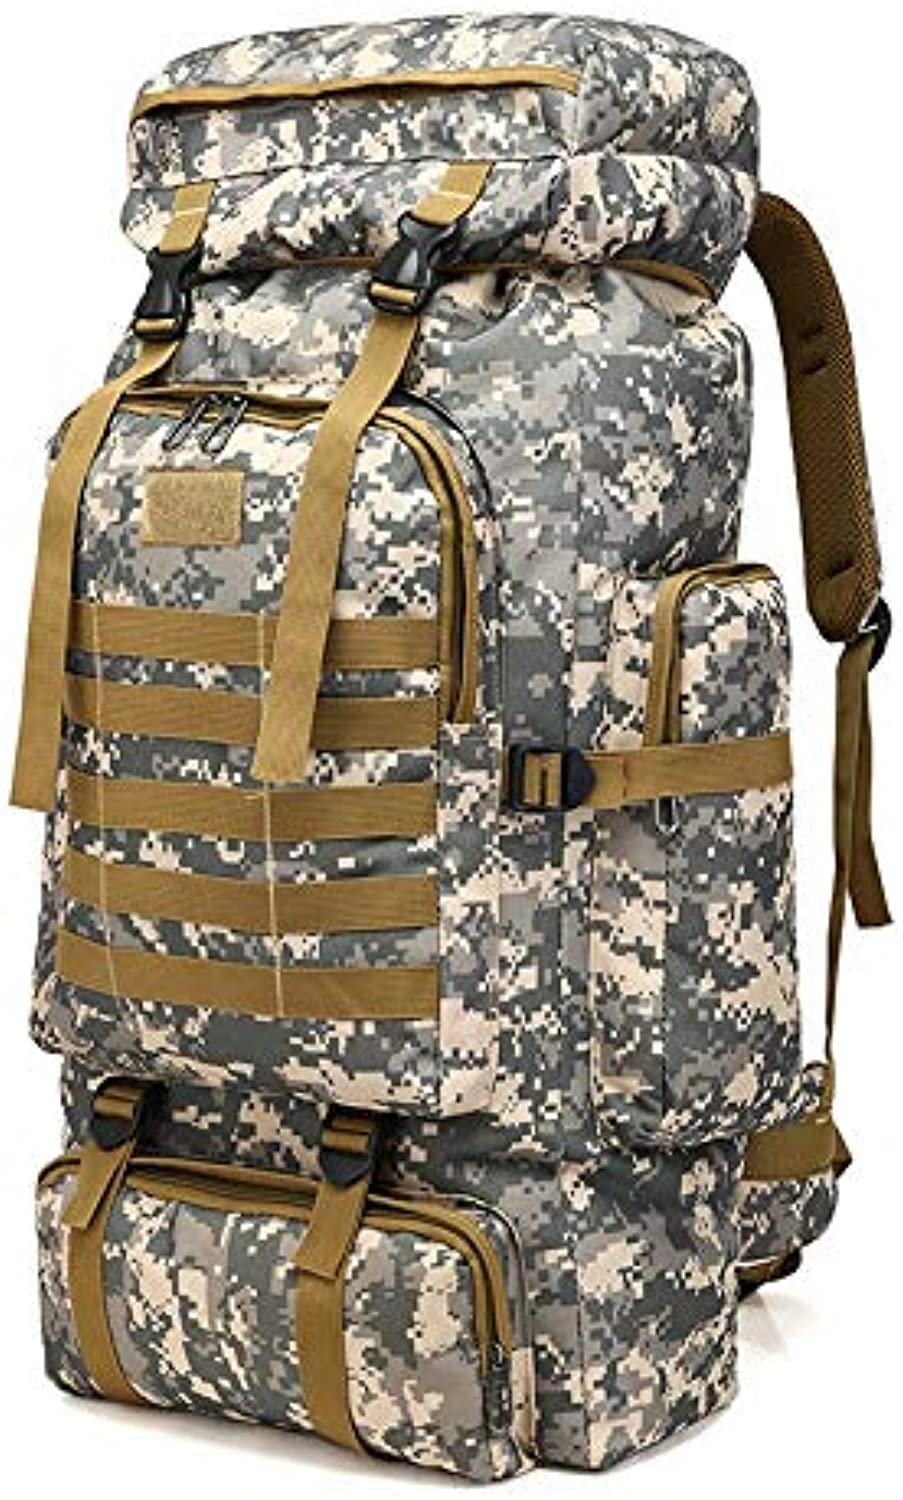 QIANHEDAMAI Outdoor Large Capacity Army Military Tactical Bag Camping Hiking Waterproof Rucksack Oxford Cloth Digital Camouflage Backpack